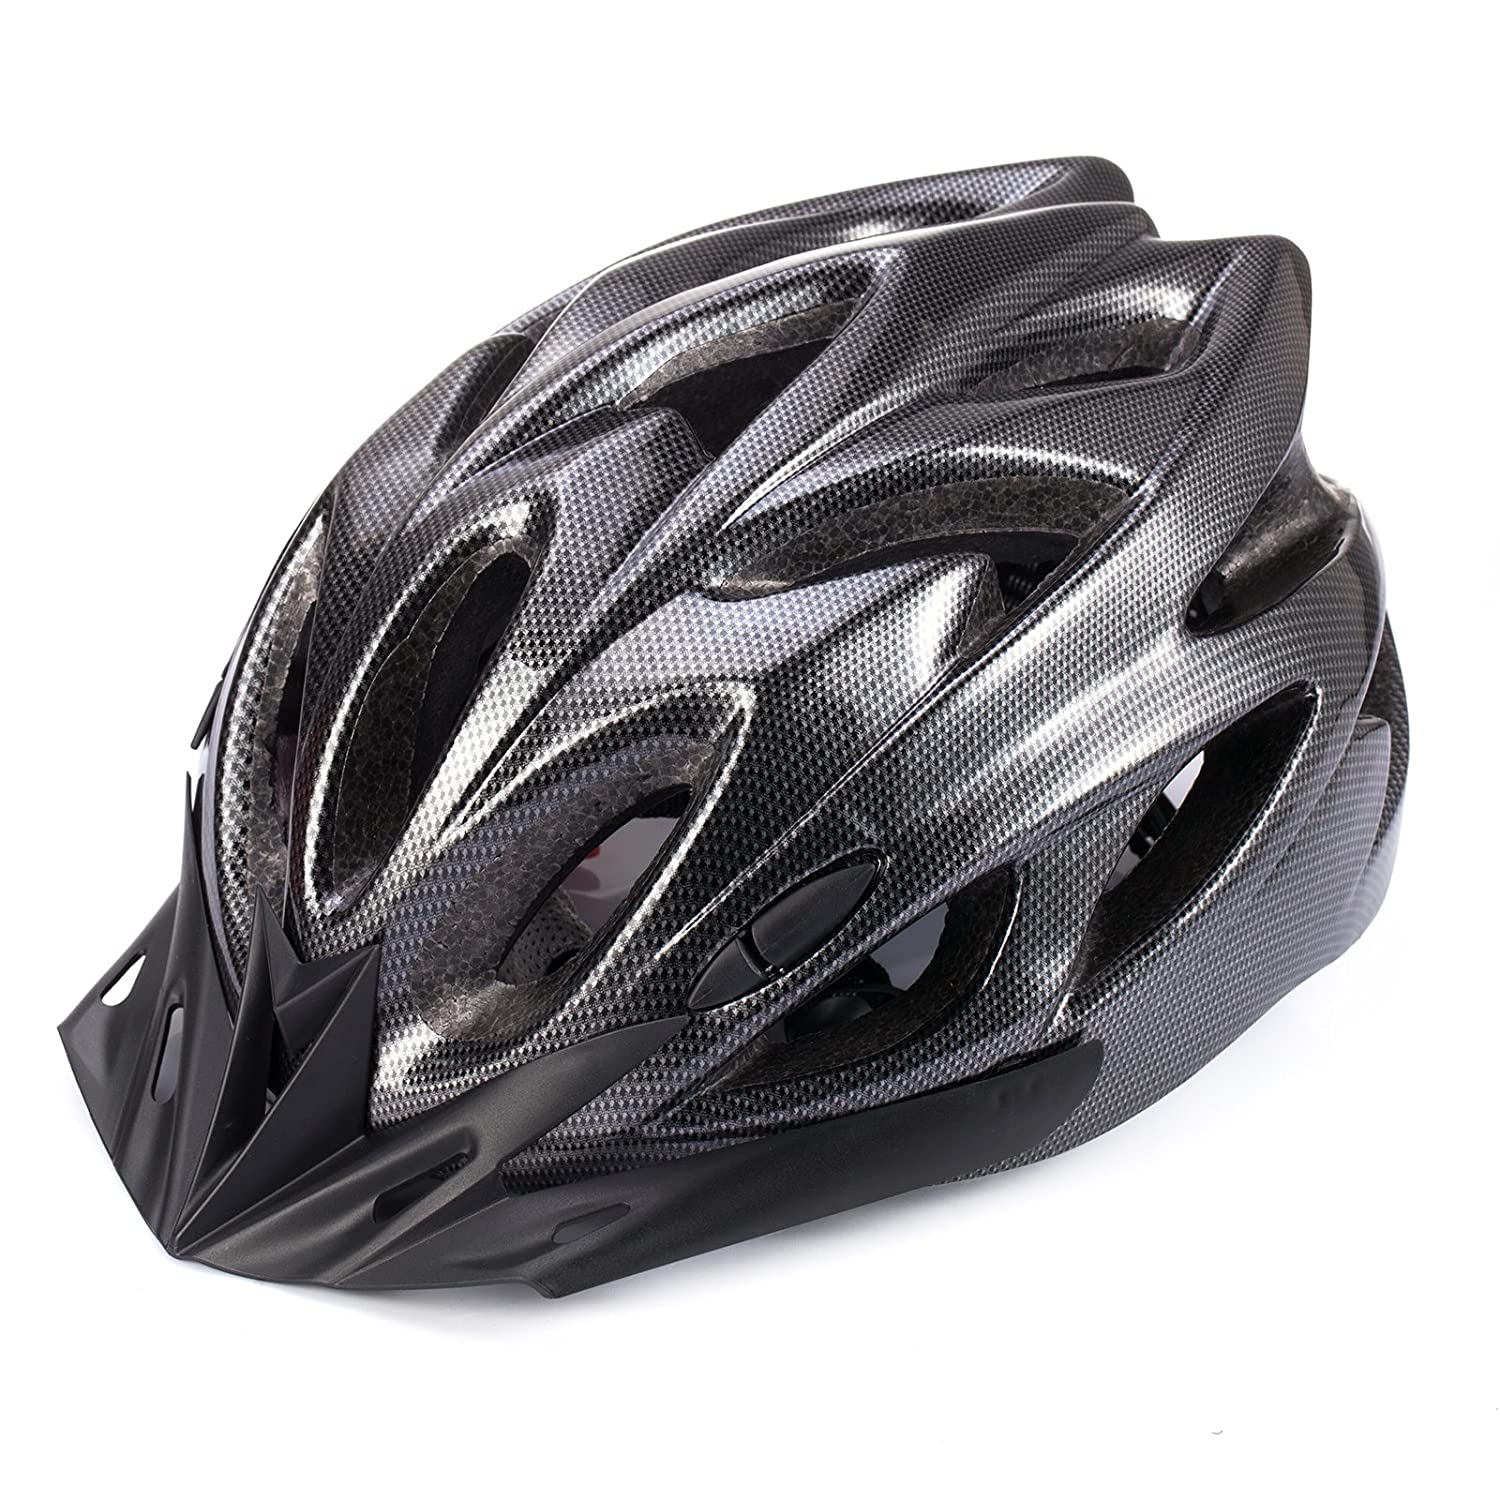 Amazon Best Sellers Best Adult Bike Helmets